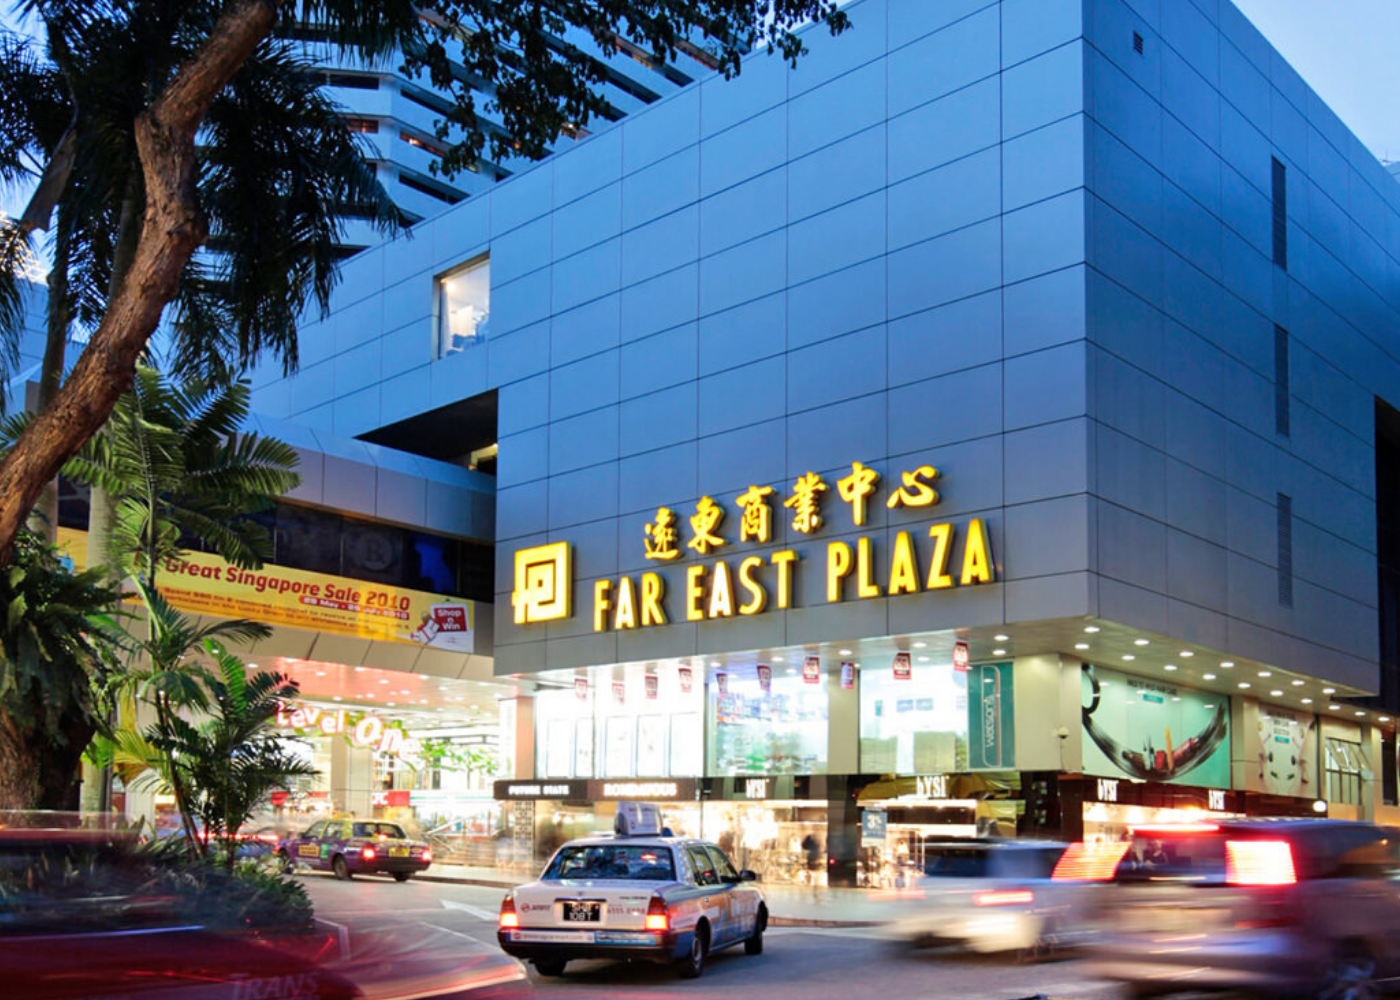 Guide to Far East Plaza Singapore